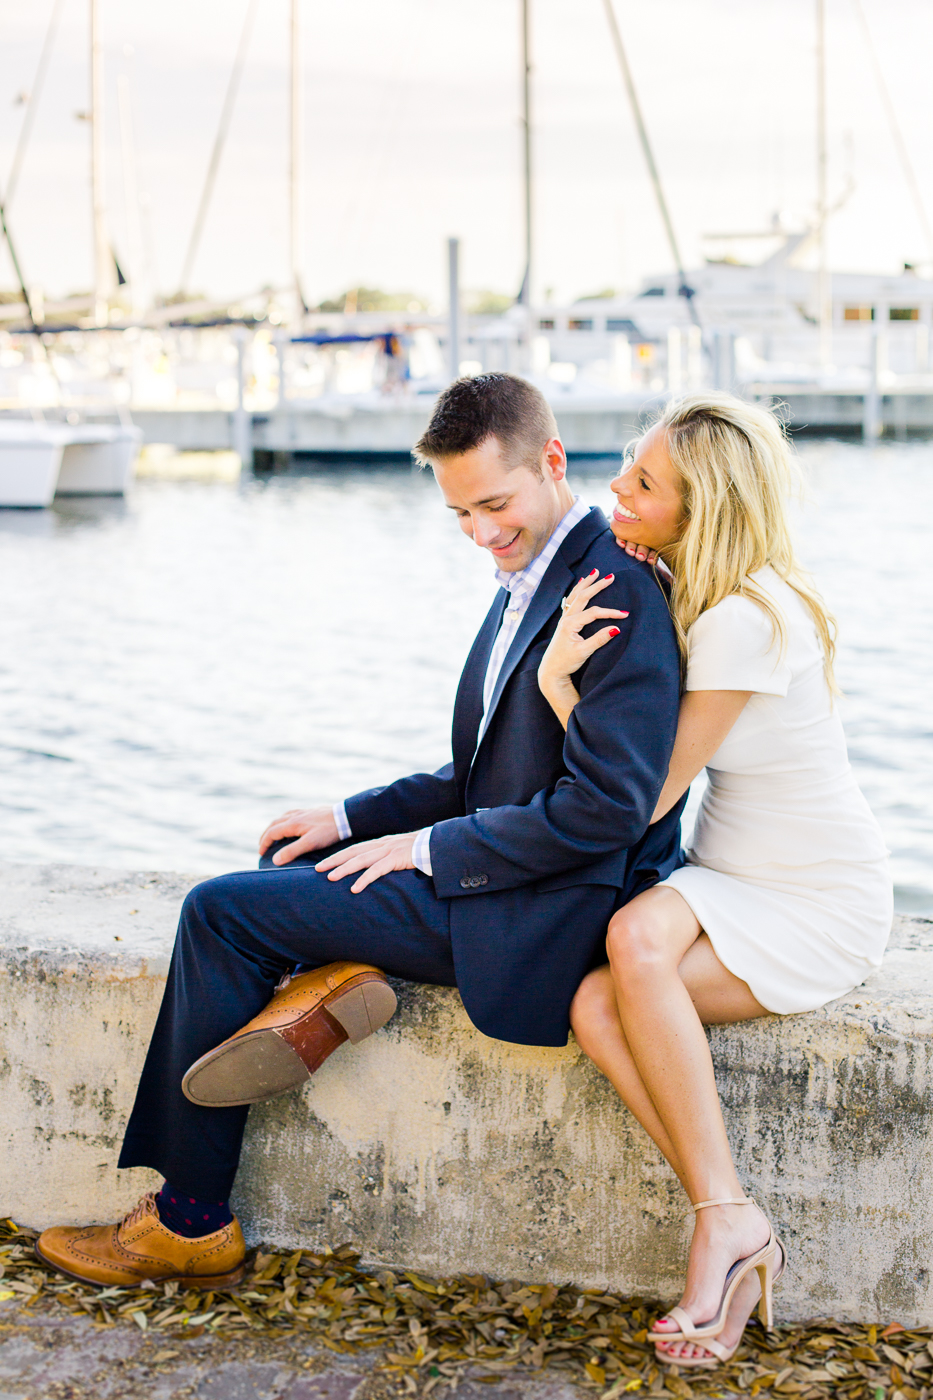 Lauren + Jordan - St. Petersburg, Florida